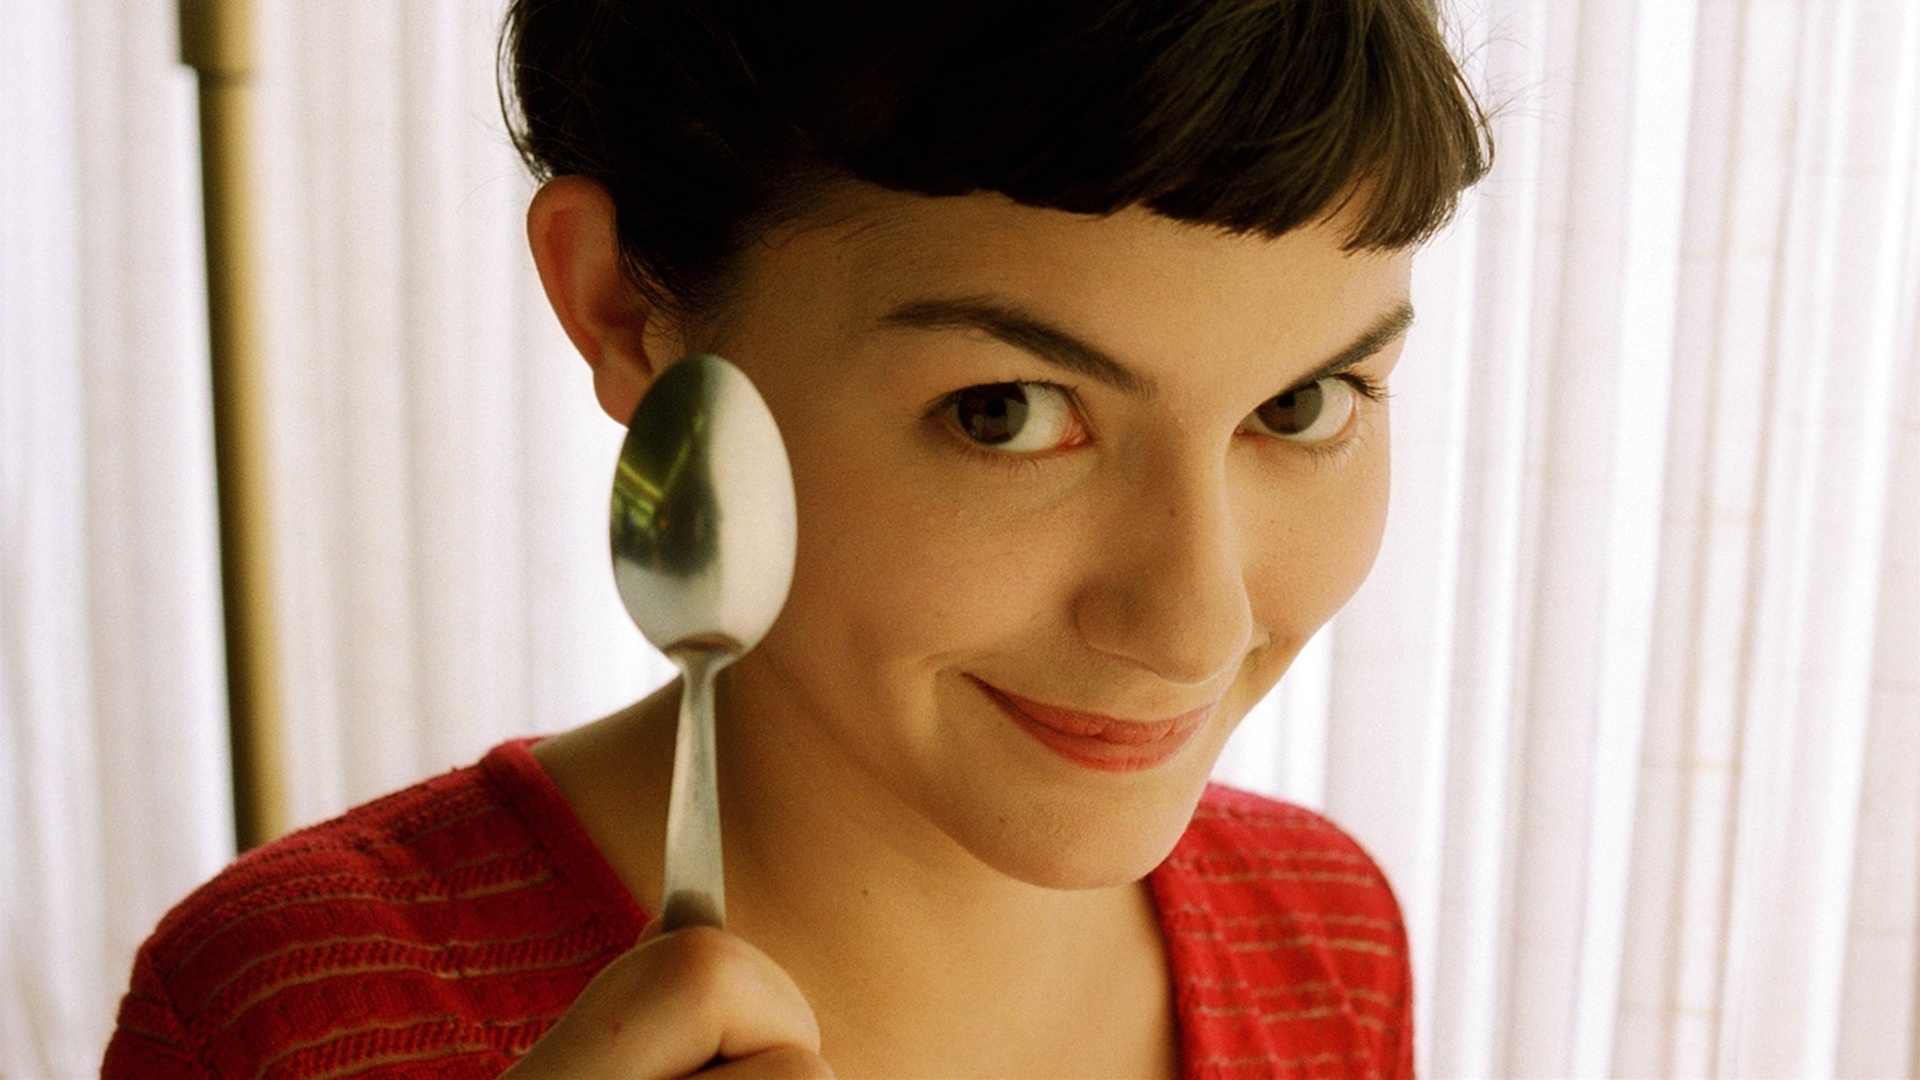 Audrey Tautou as Amelie wallpaper